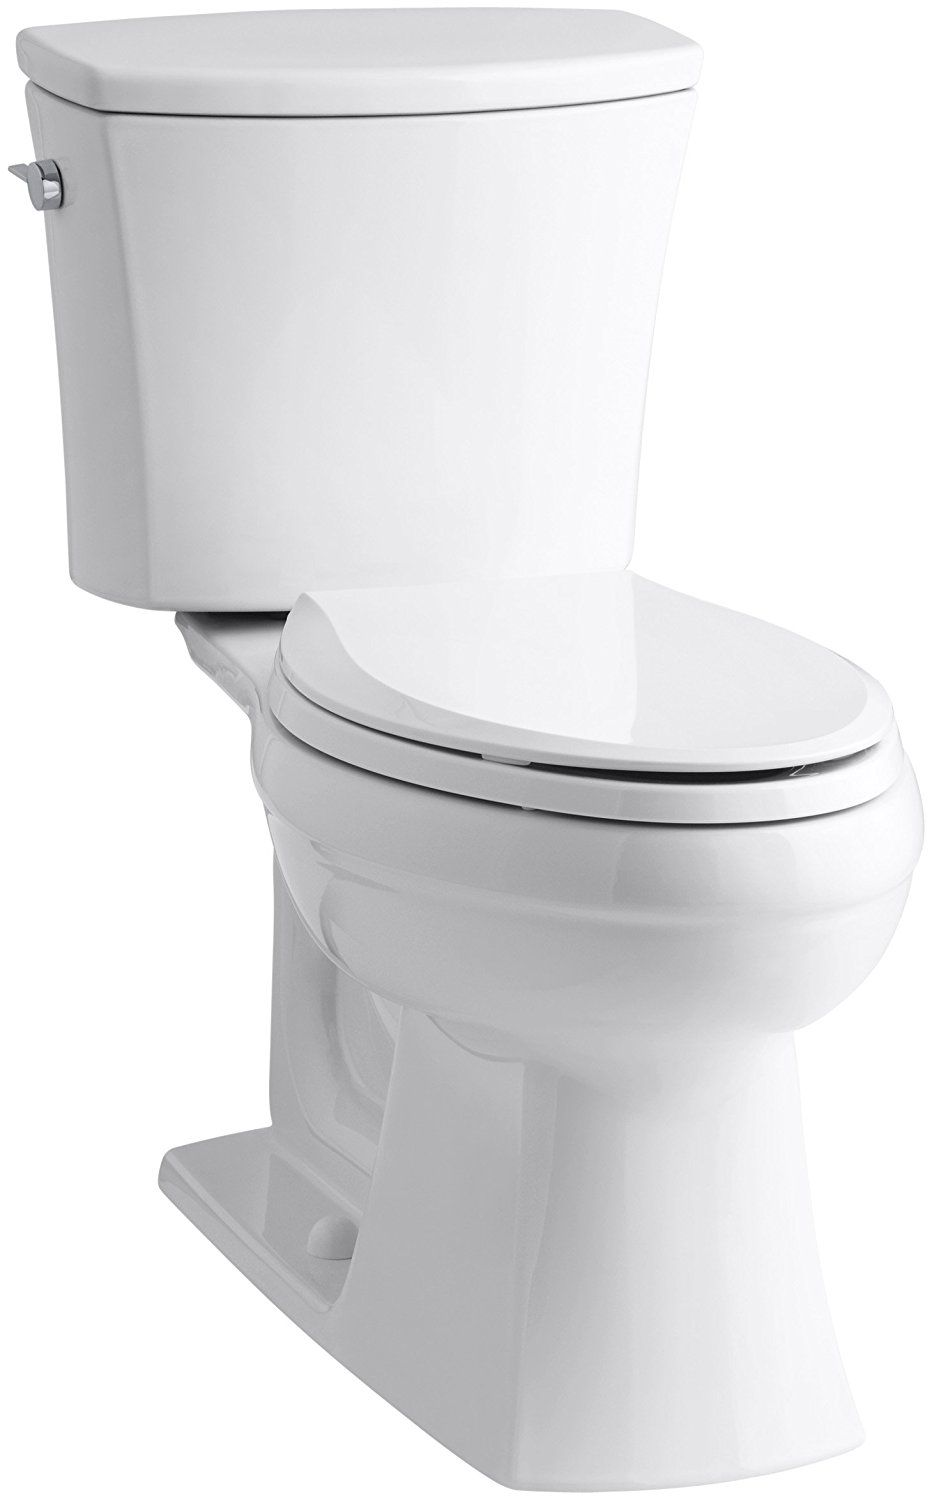 KOHLER K-3755-0 Kelston Comfort Height Two-Piece Toilet with 1.28 ...